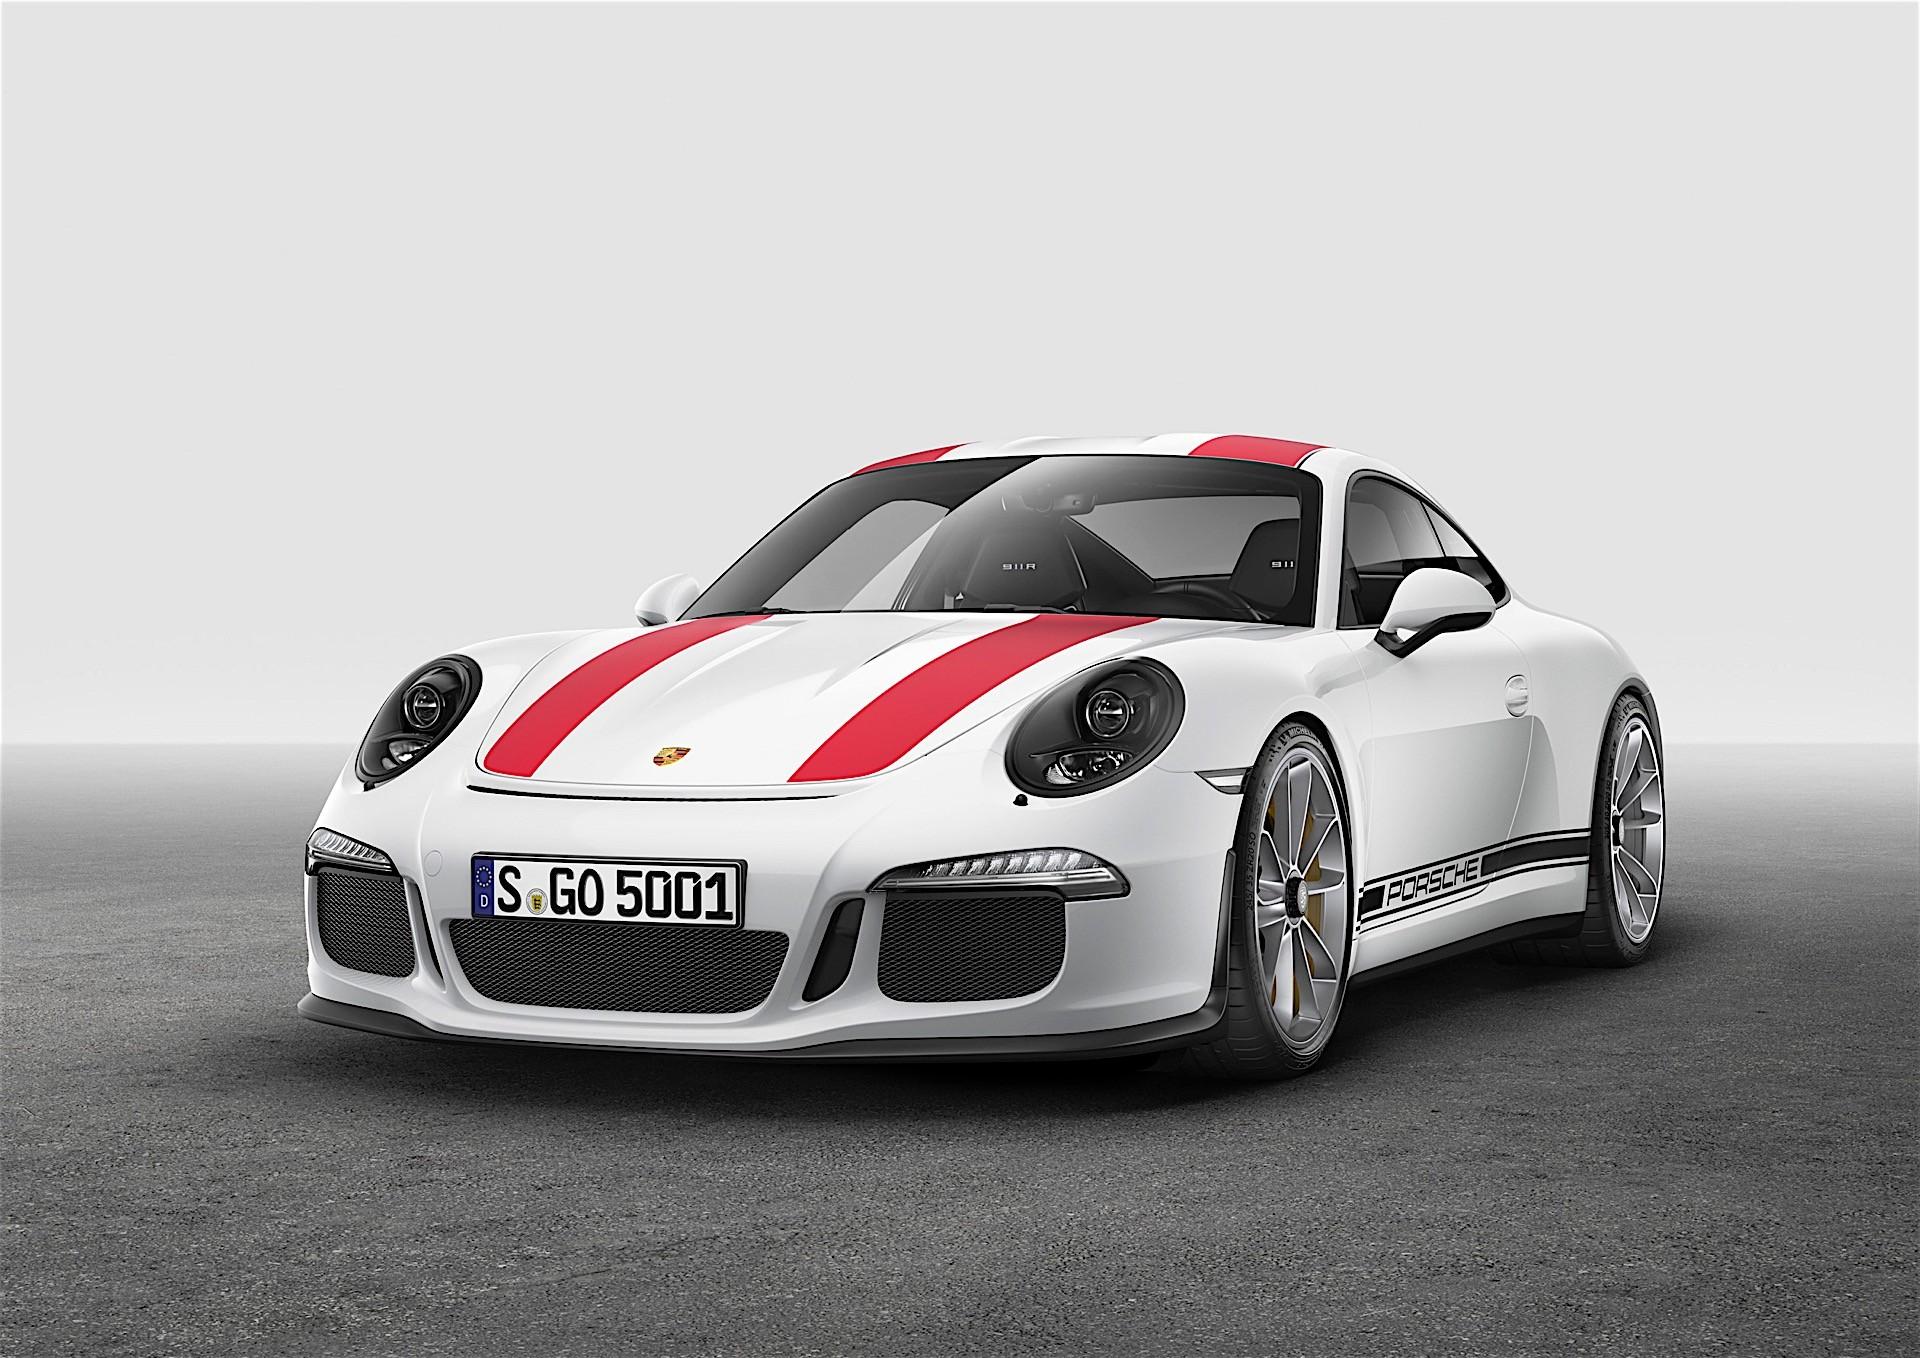 2017 Porsche 911 R Officially Revealed, Only 991 Units Will Be Made